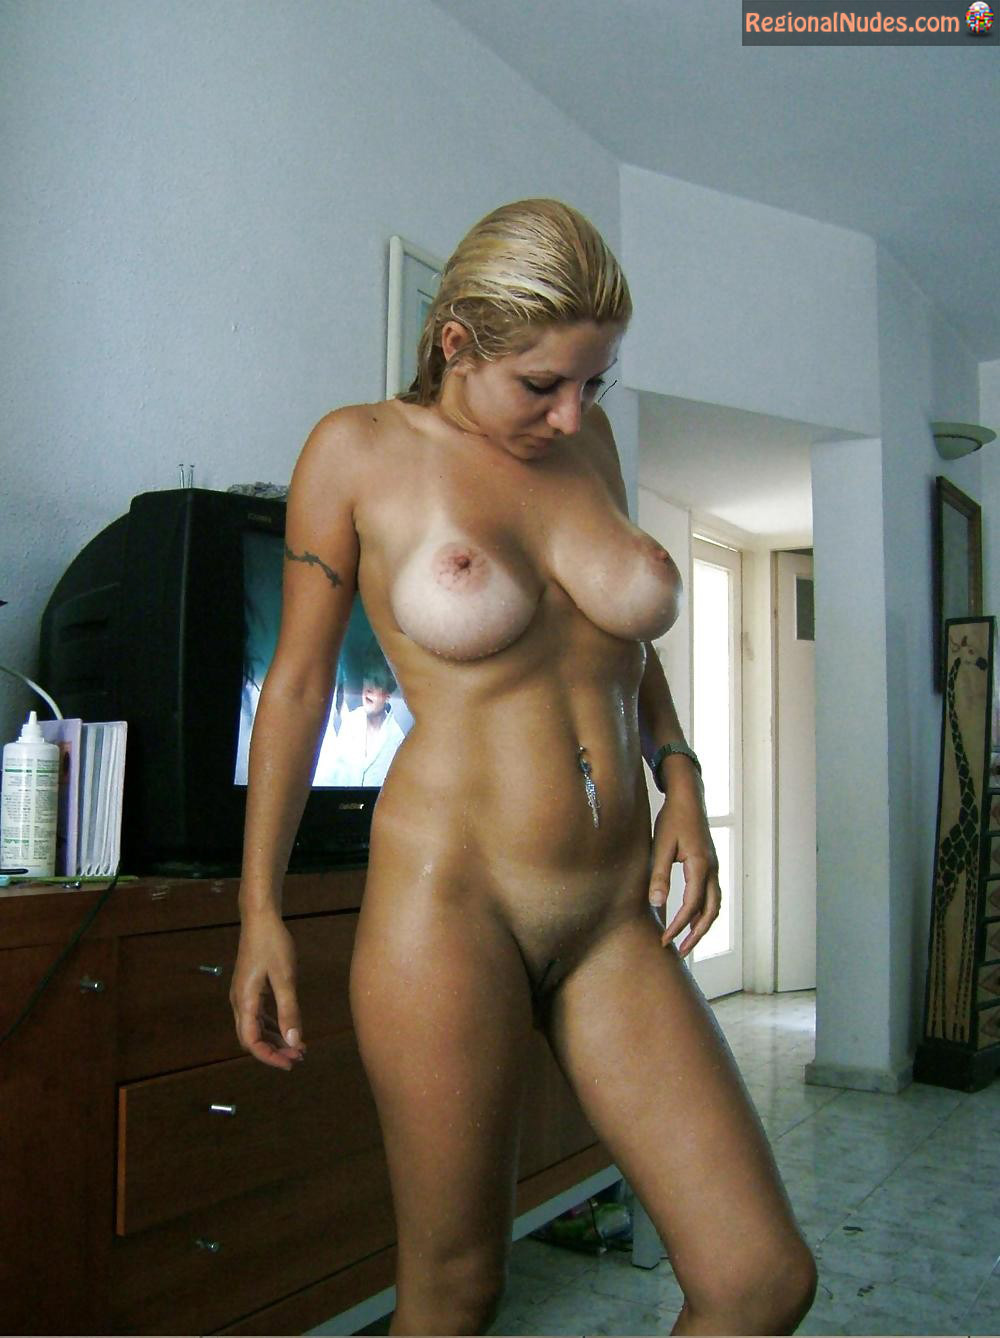 Busty jewish women nude are